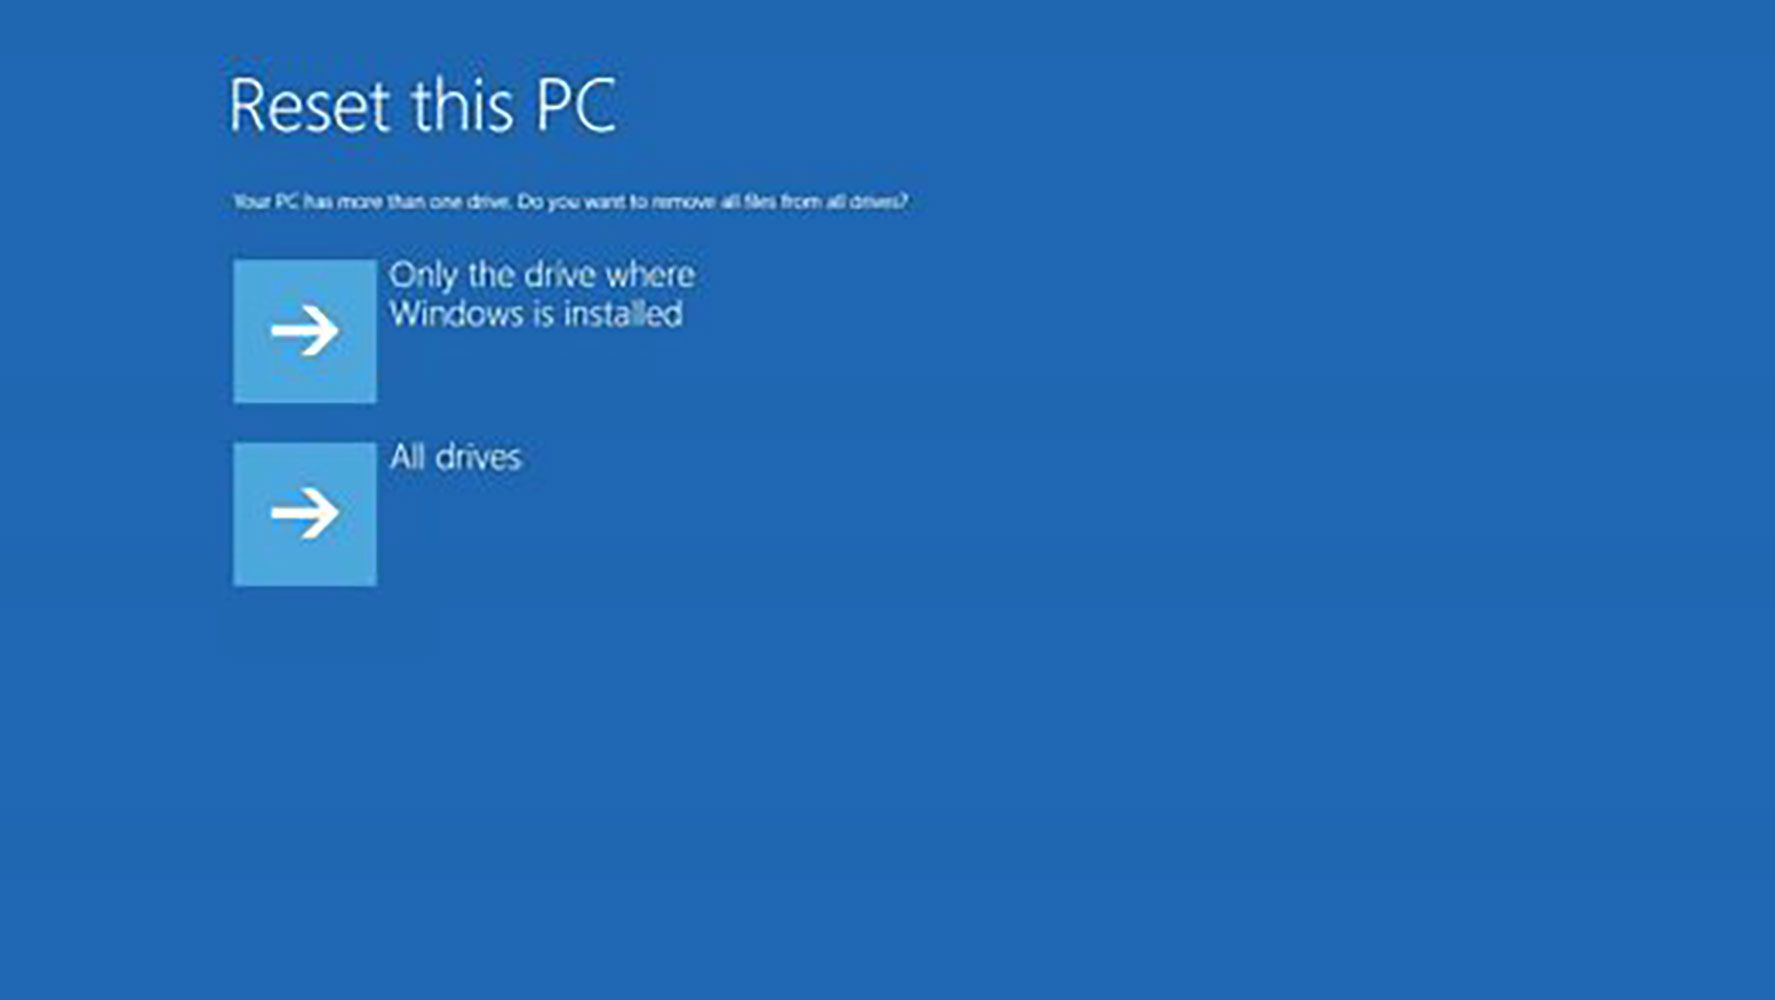 Drive options for resetting a PC